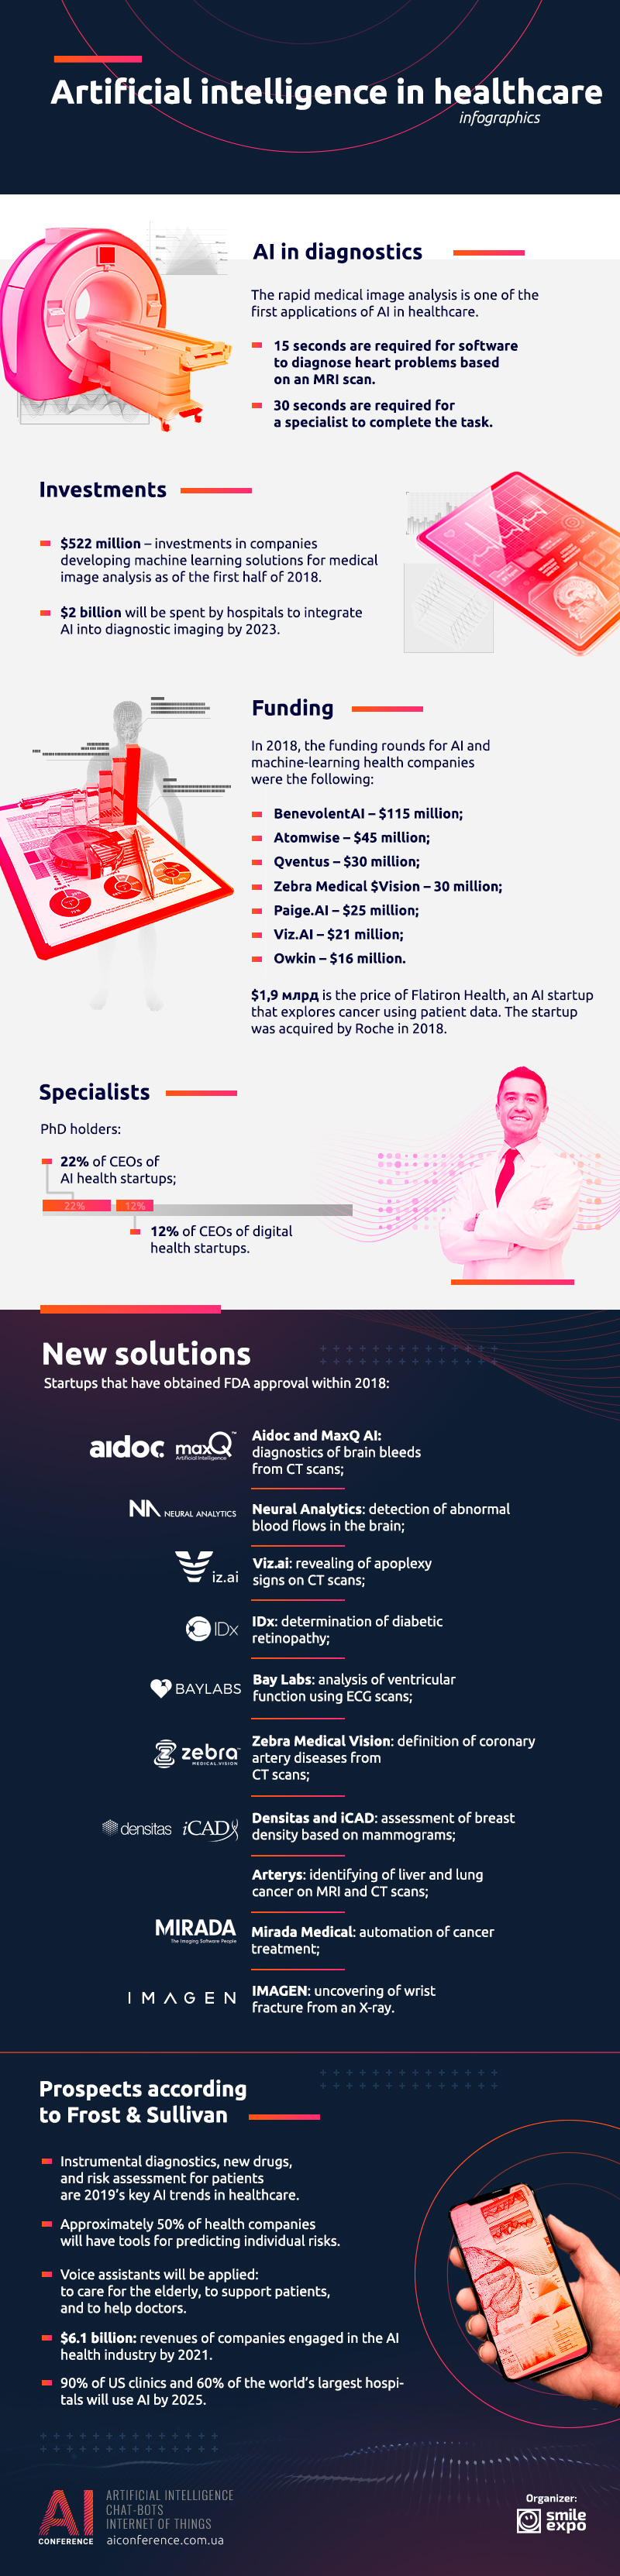 AI Conference Kyiv: Artificial intelligence in healthcare: infographics 1